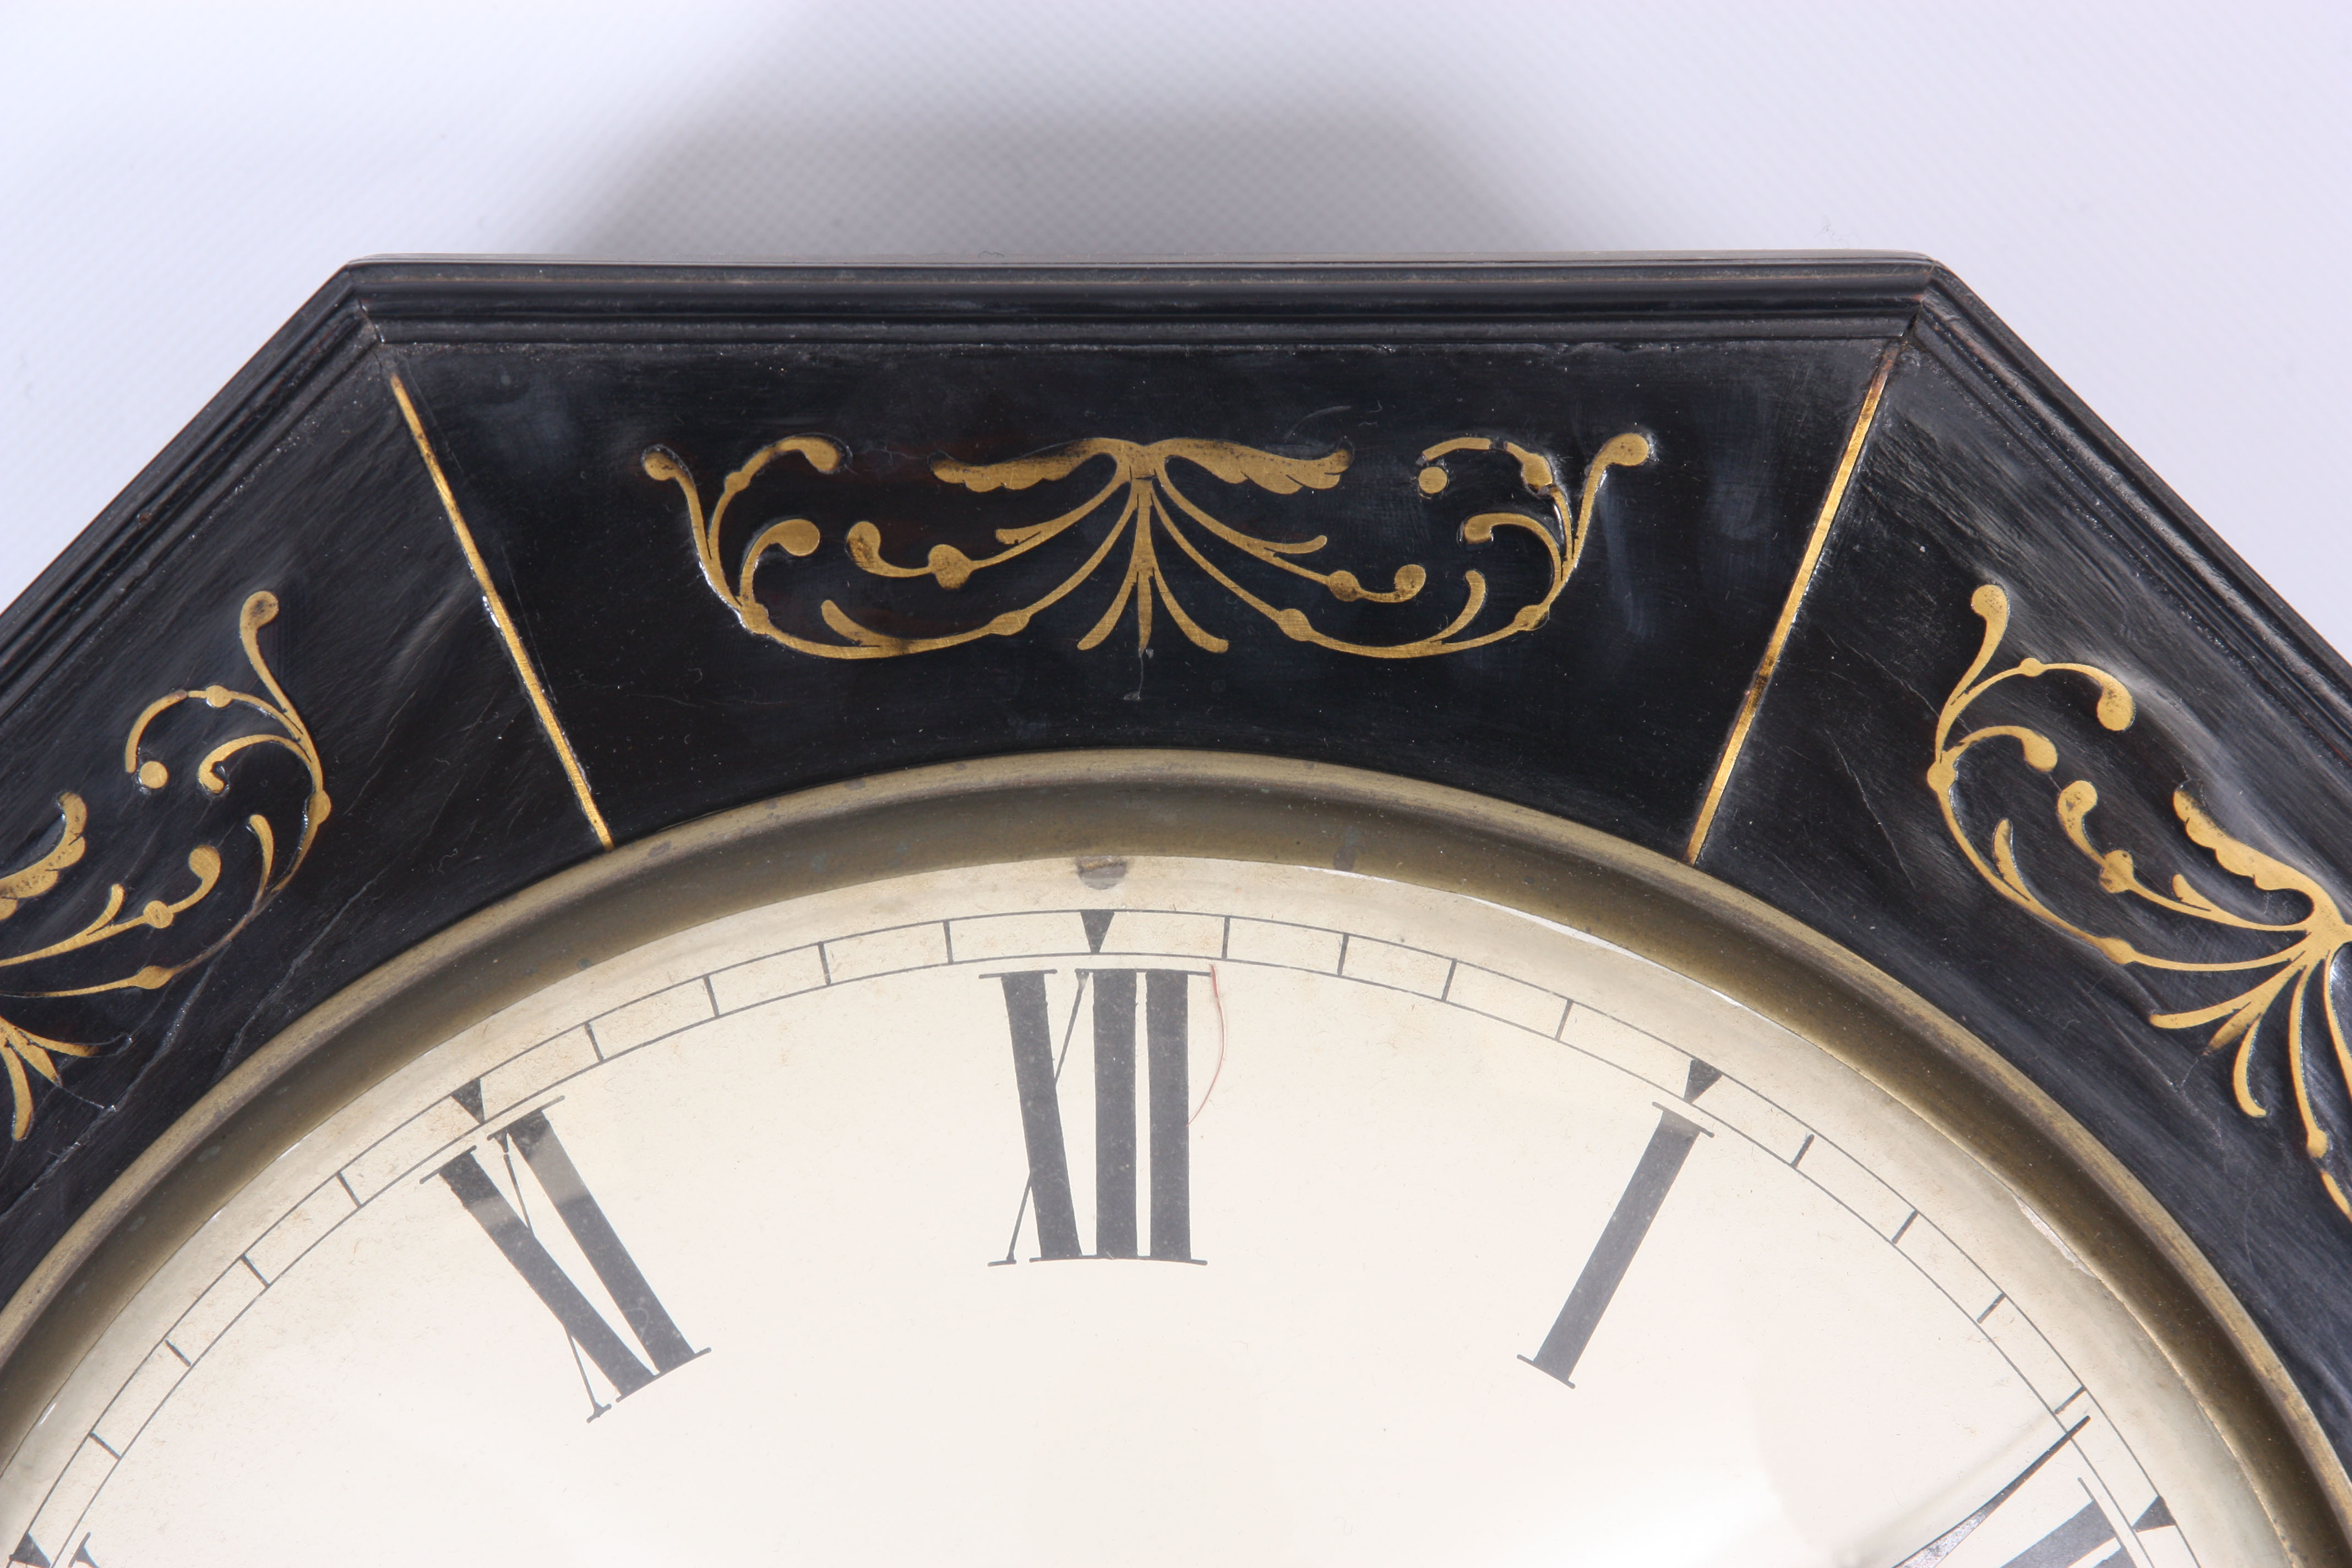 ROSSI, NORWICH A REGENCY EBONISED DOUBLE FUSEE WALL CLOCK with octagonal brass inlaid surround on - Image 2 of 5